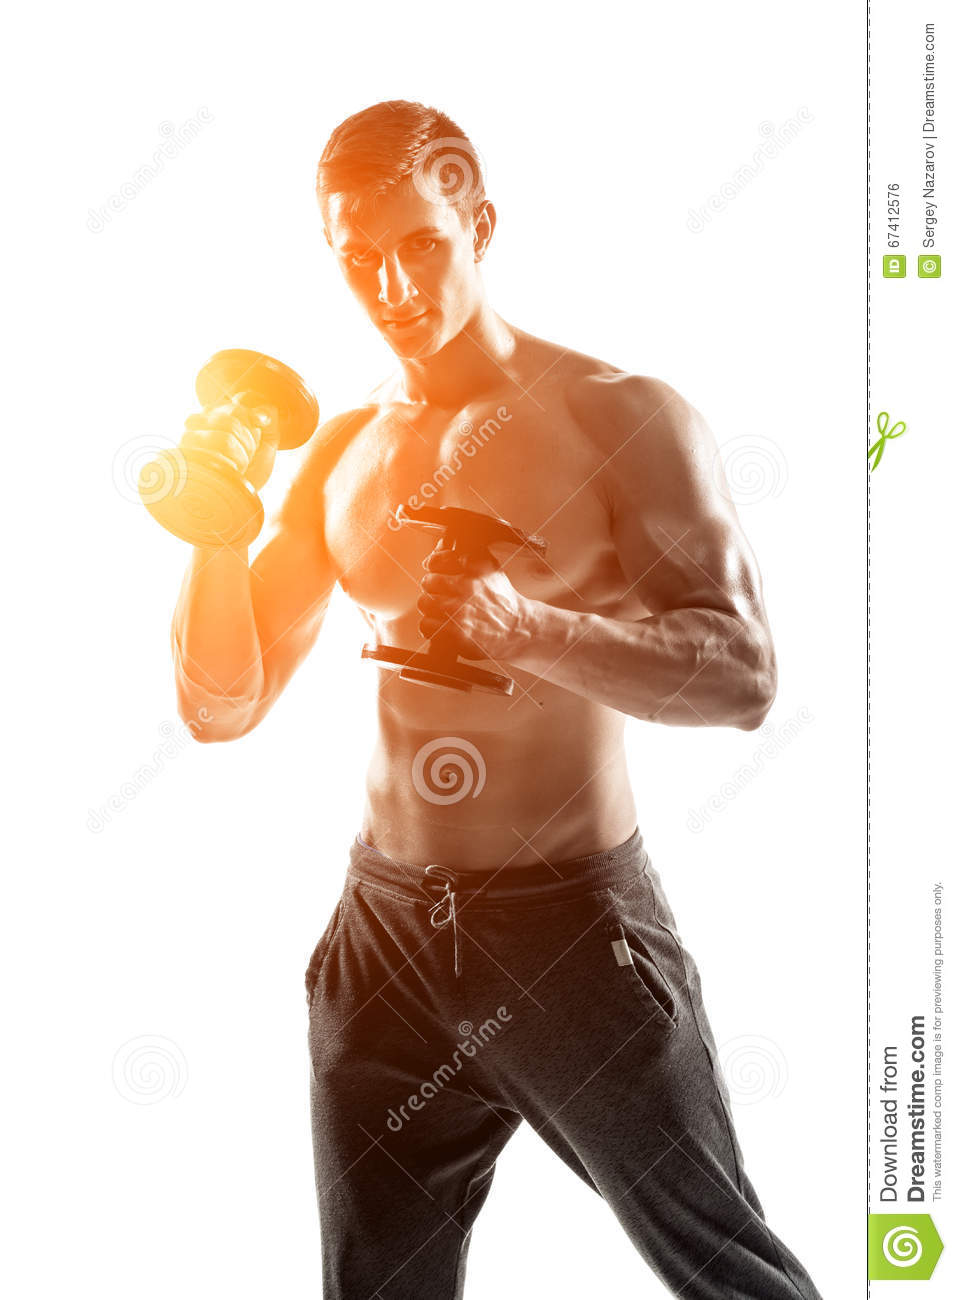 Athletic Man Showing Muscular Body With Dumbbells, Full